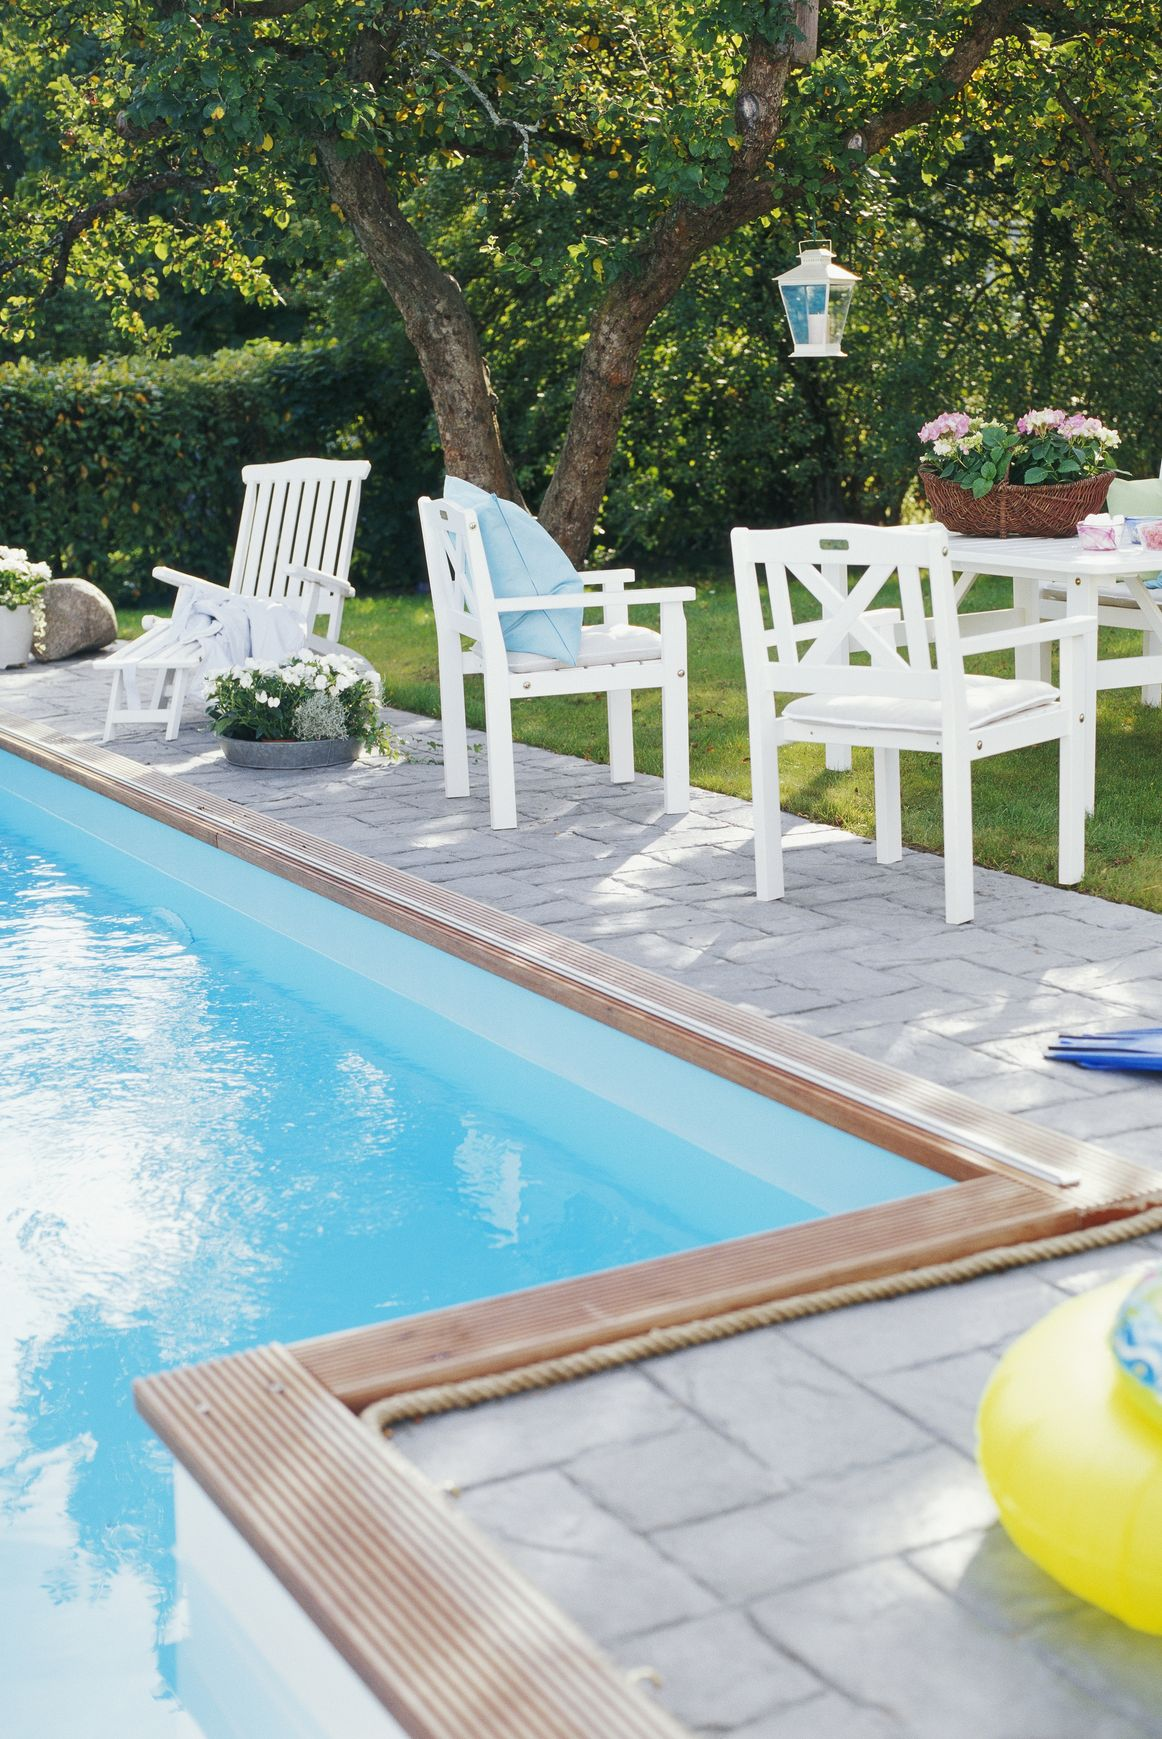 Outdoor furniture by a pool.